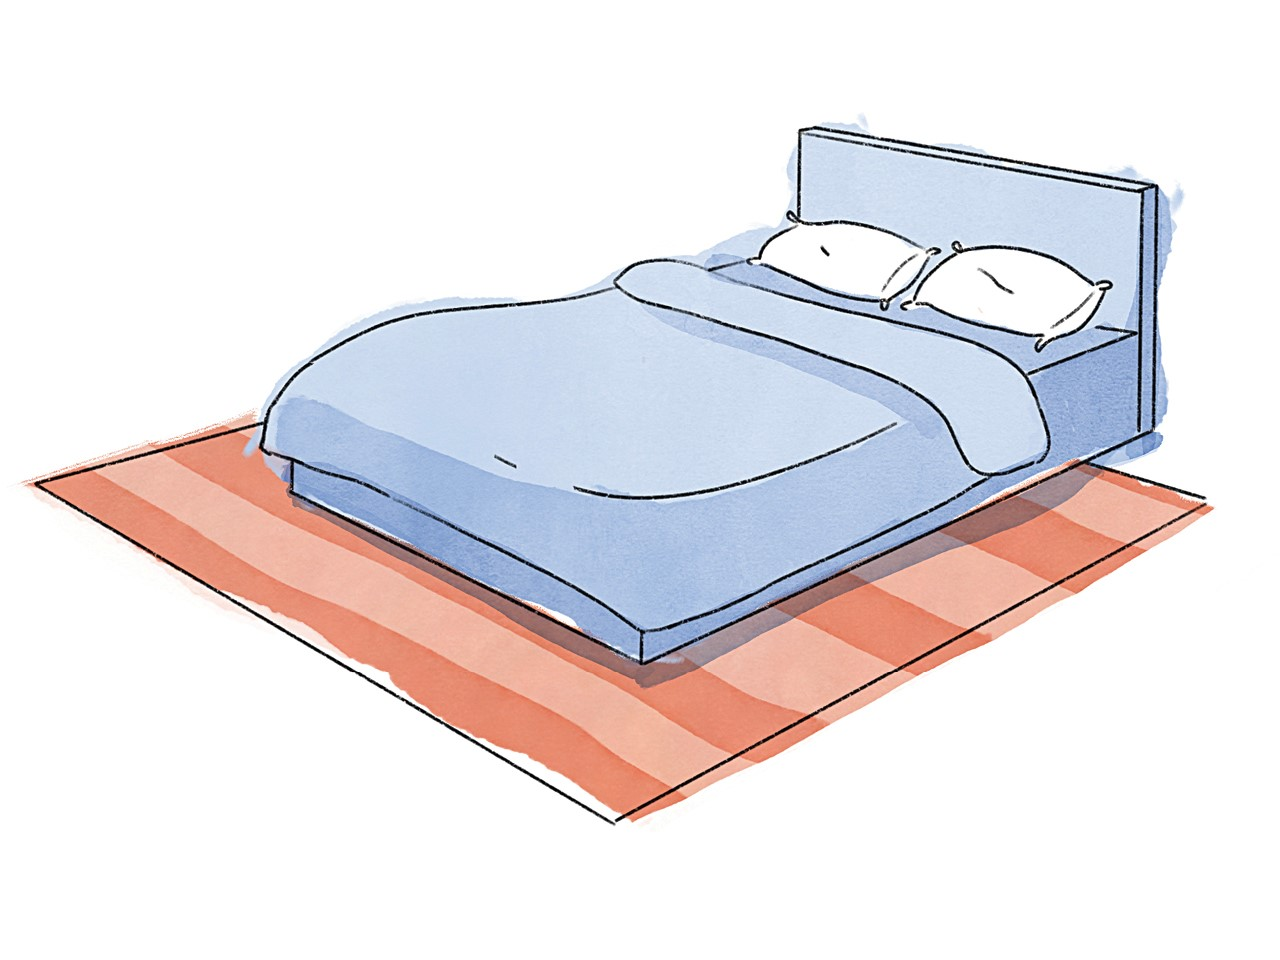 rug size buying guide illustration of a blue double bed with white pillows on a peach striped rug